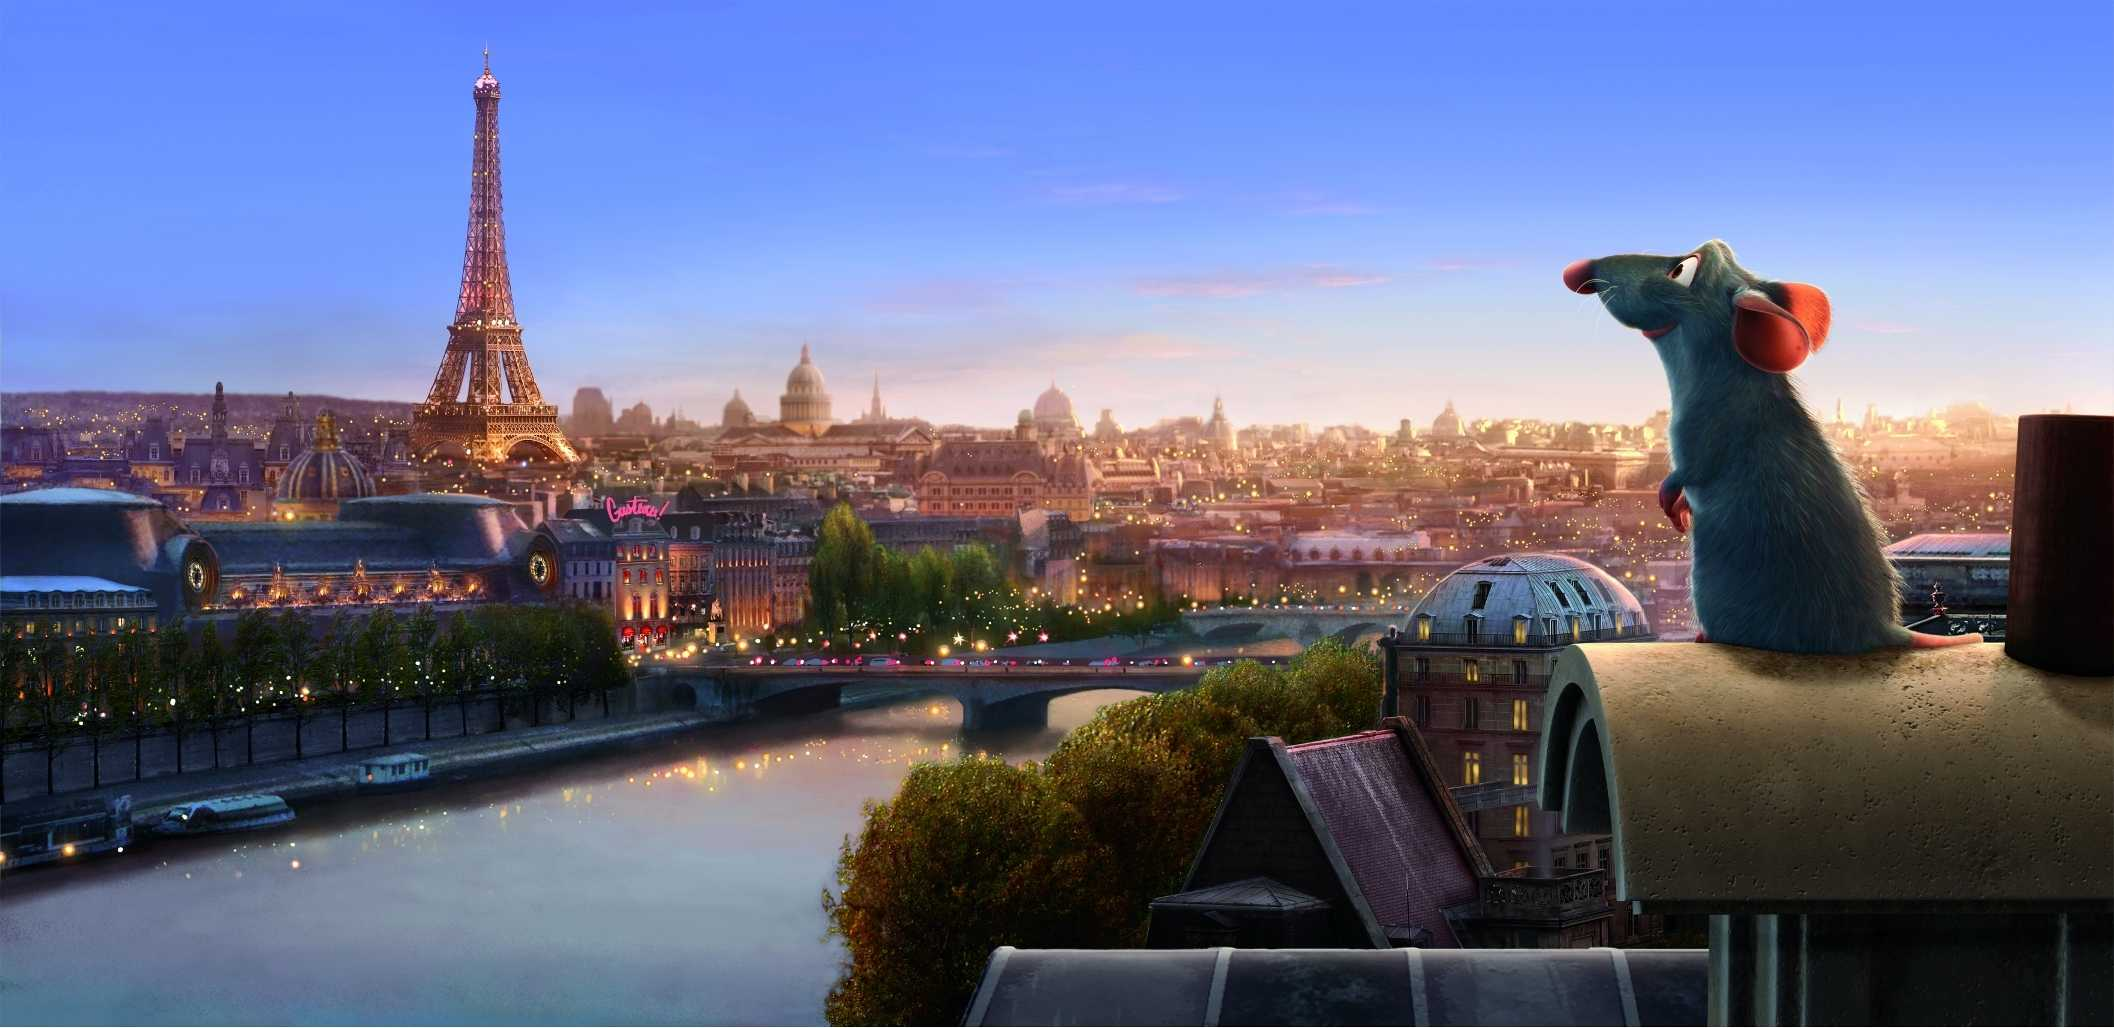 Ten years later, 'Ratatouille' remains a striking allegory of art and class